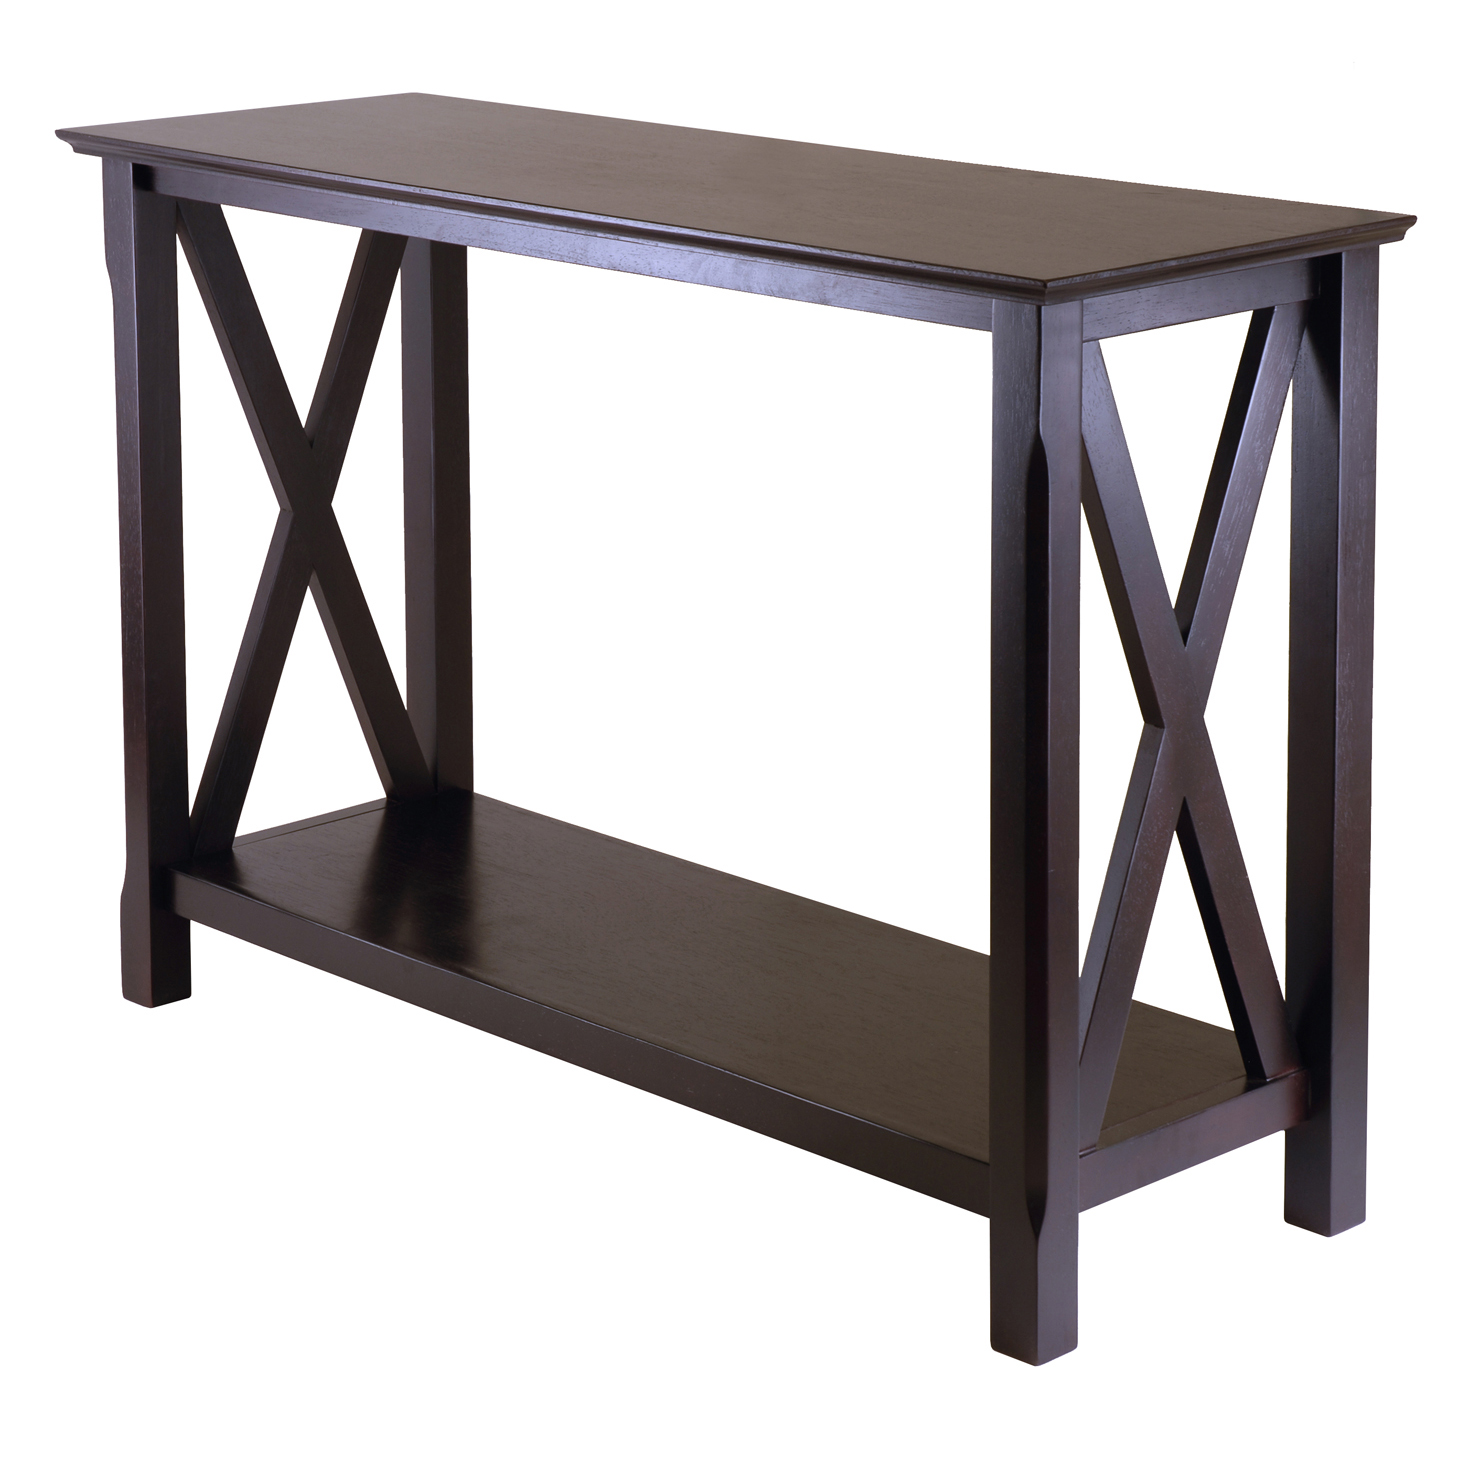 Winsome Wood Xola X Panel Console Table, Cappuccino Finish